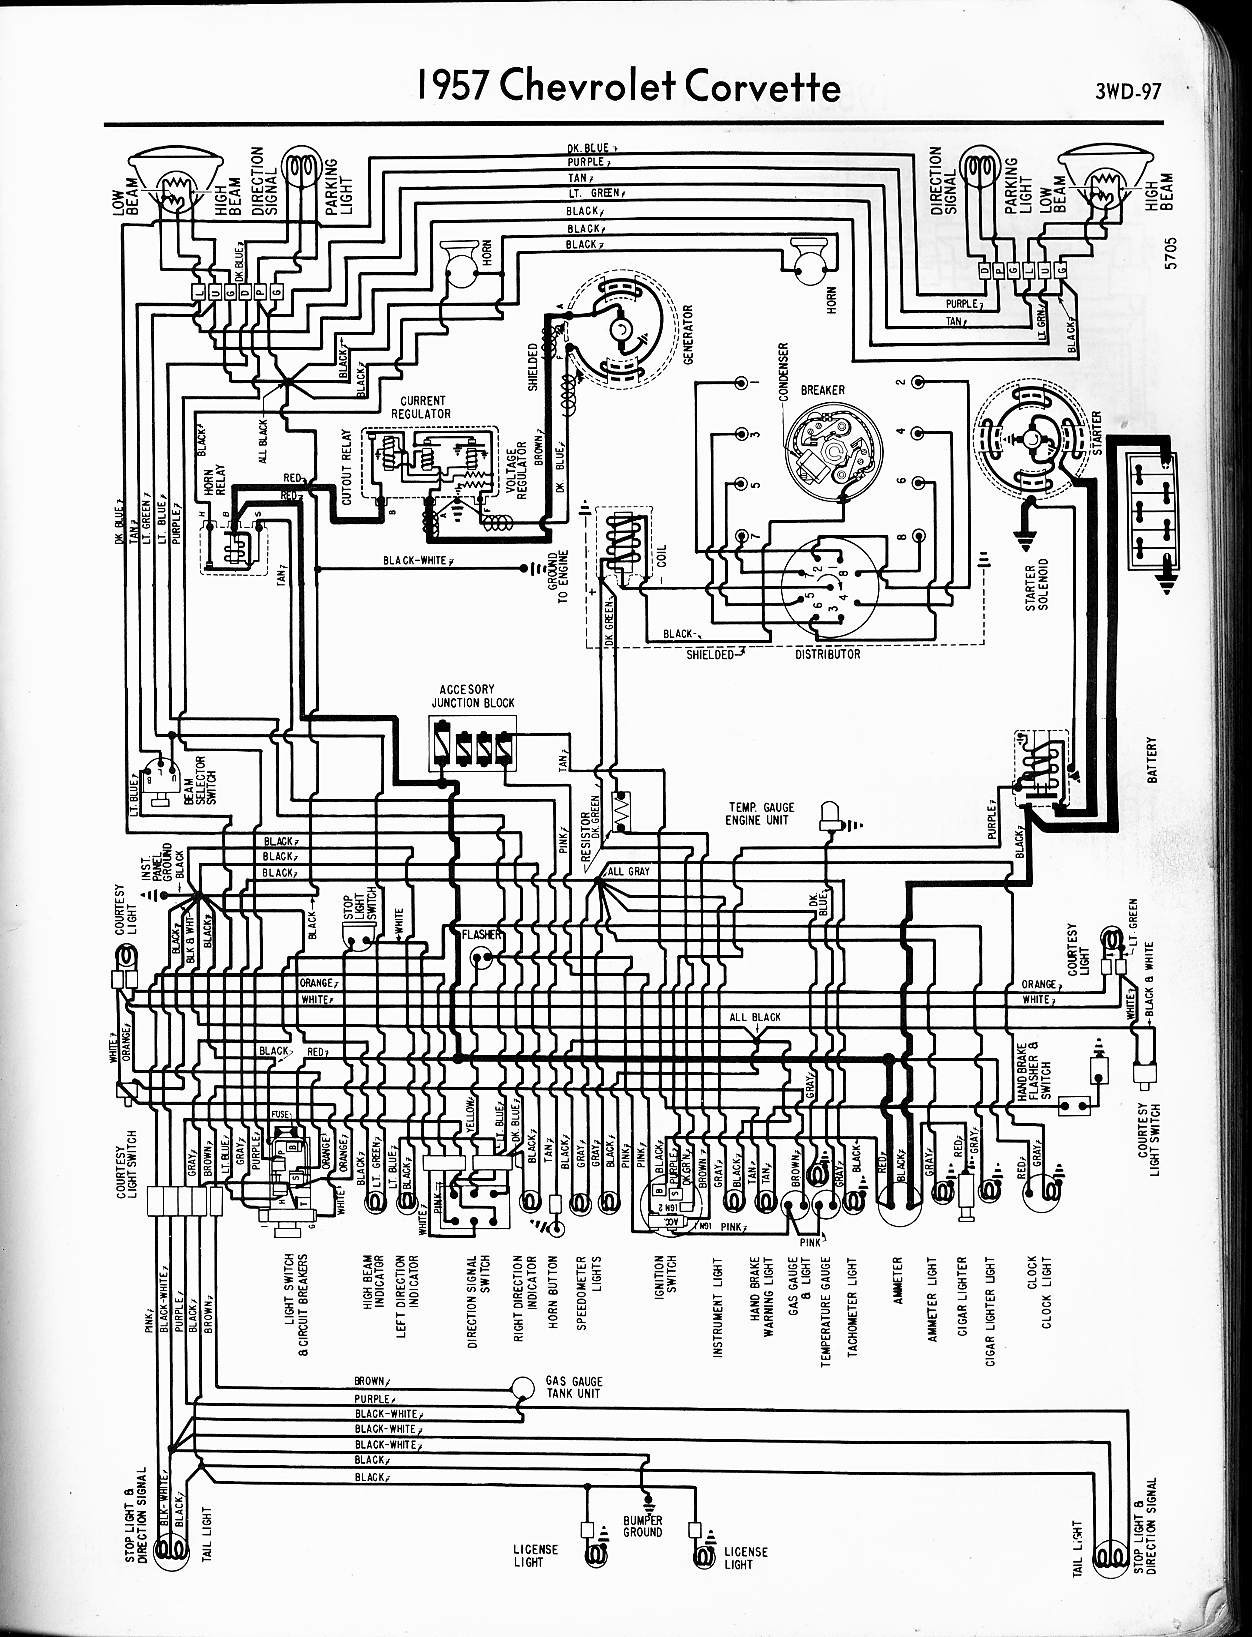 hight resolution of 1969 corvette starter wiring diagram wiring library suzuki cultus wiring diagram wiring diagrams of 1957 chevrolet v8